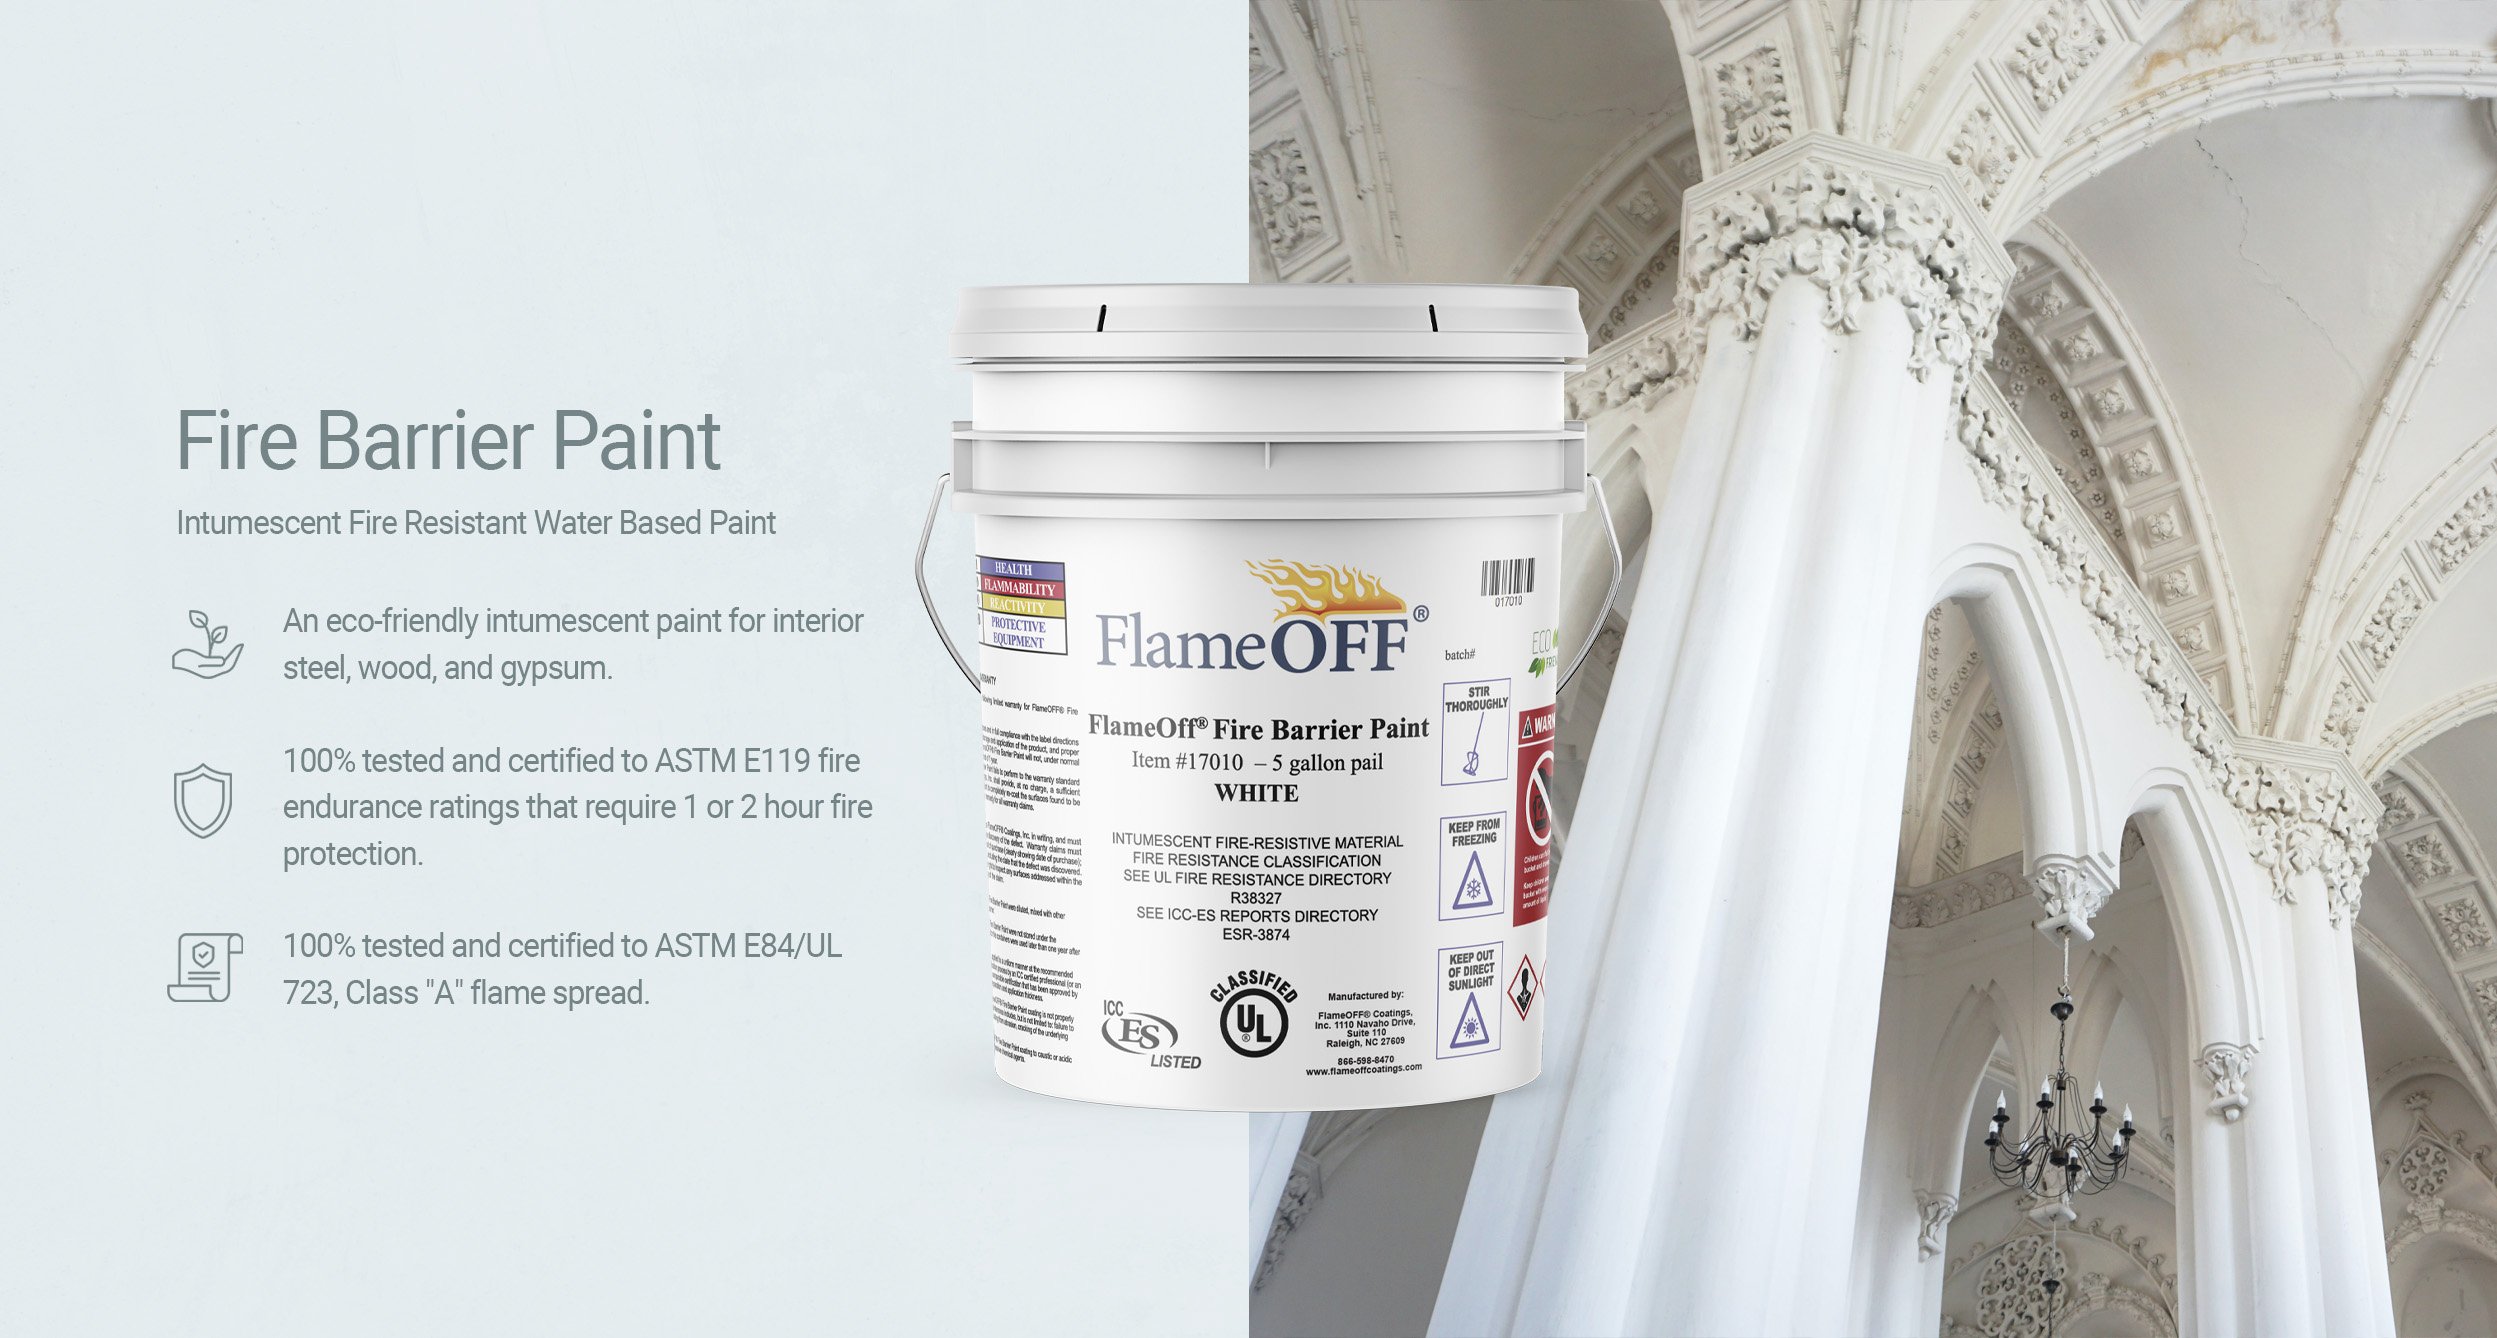 Fire barrier paint for gypsum